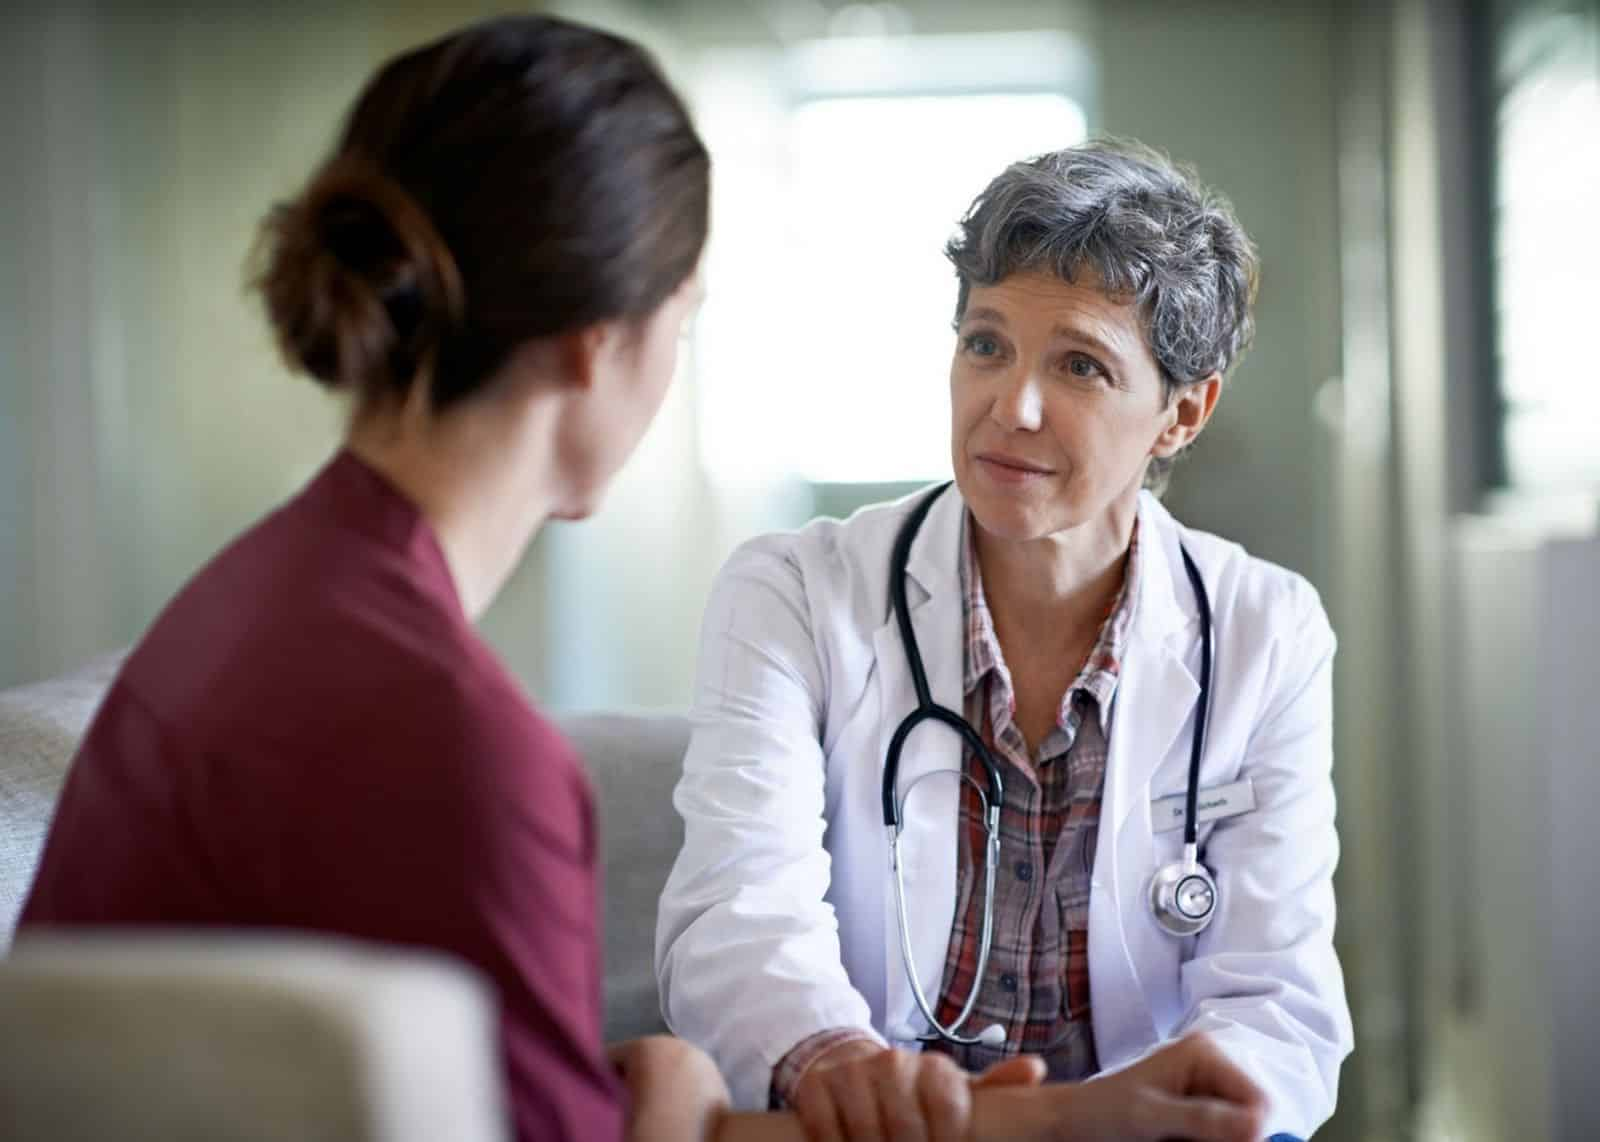 Healthcare provider speaks compassionately with young female patient showing possible signs of domestic violence